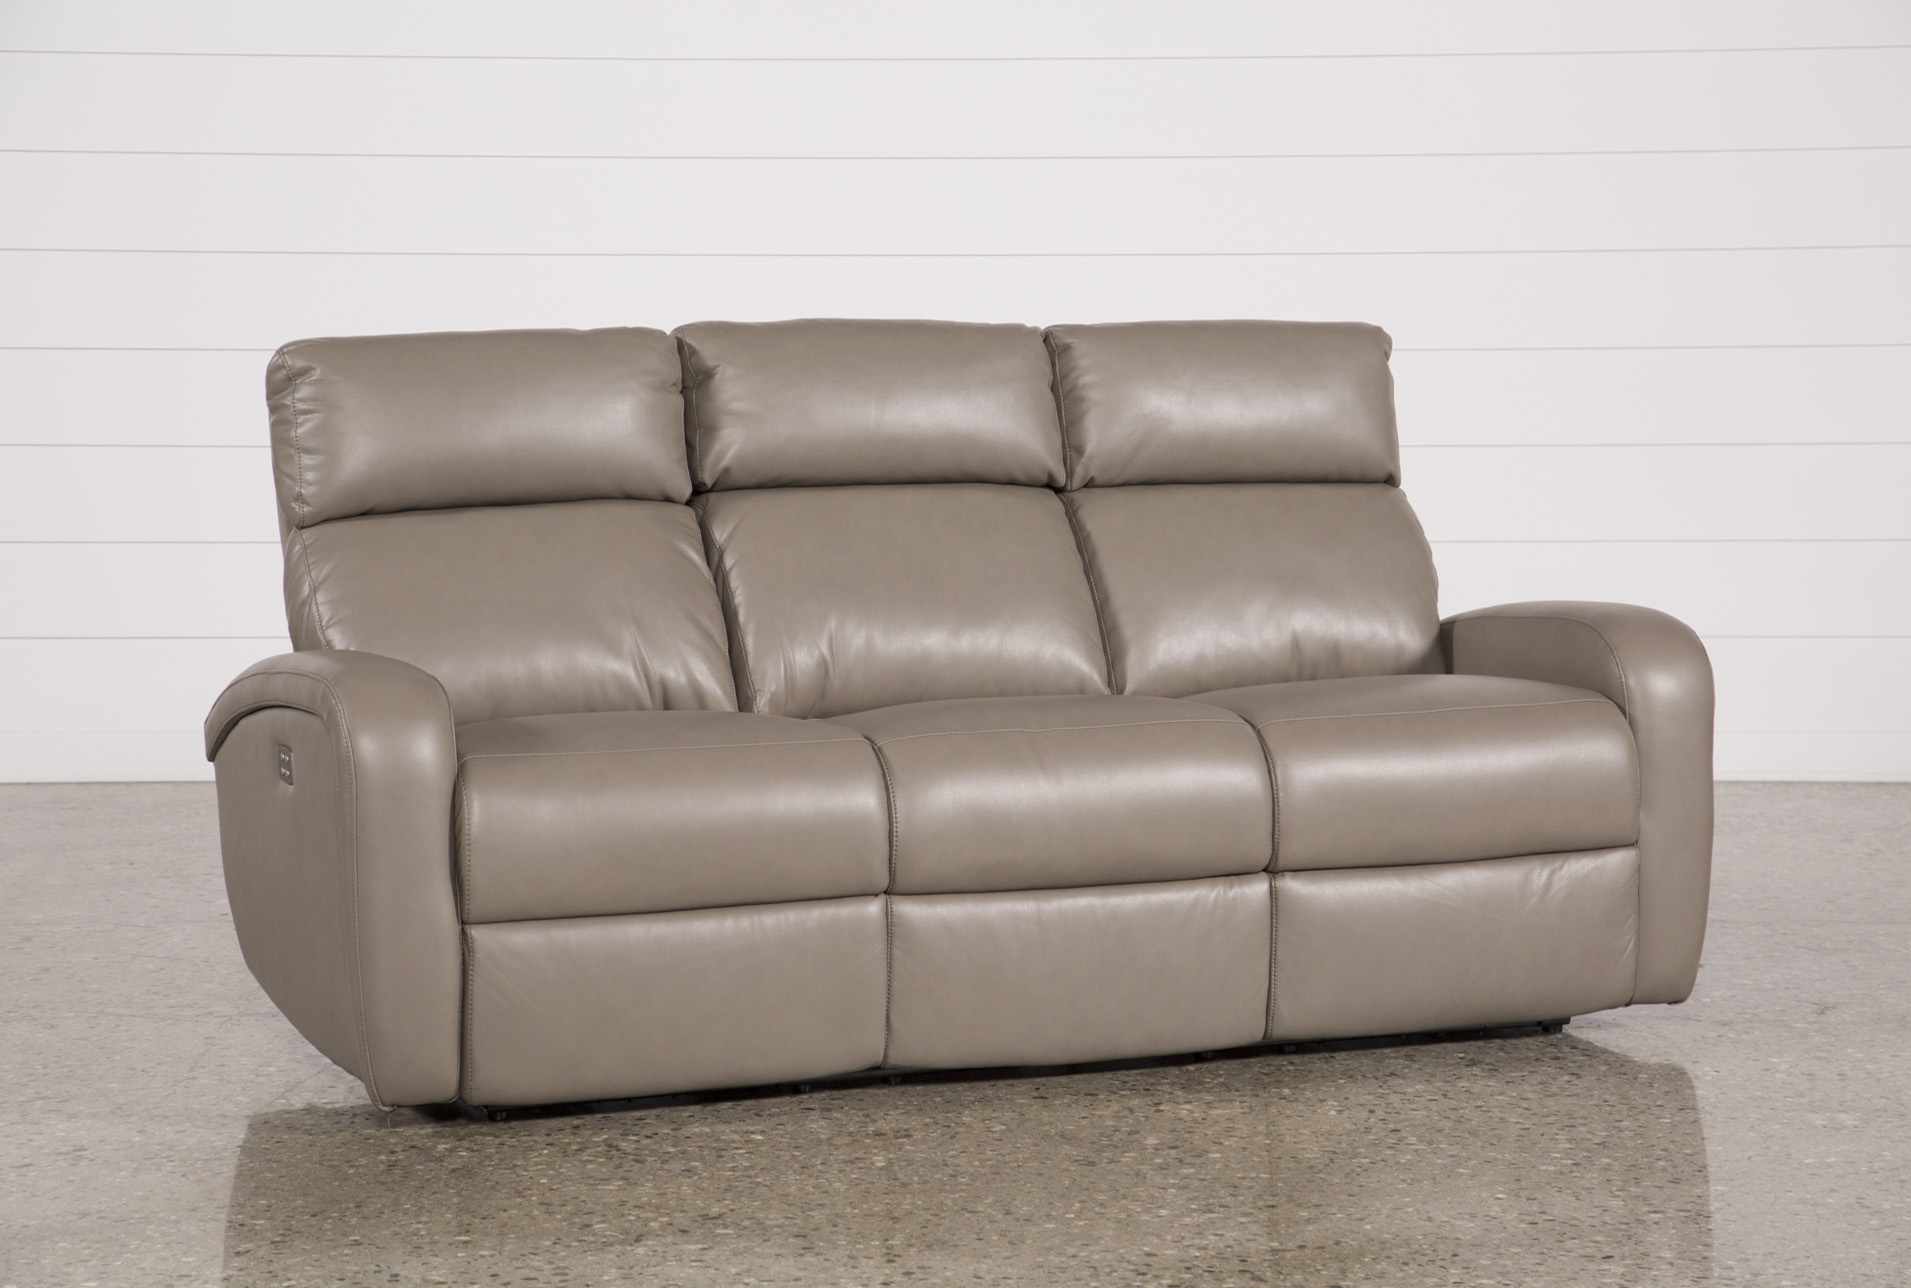 Awesome Darwin Taupe Power Reclining Sofa (Qty: 1) Has Been Successfully Added To  Your Cart.